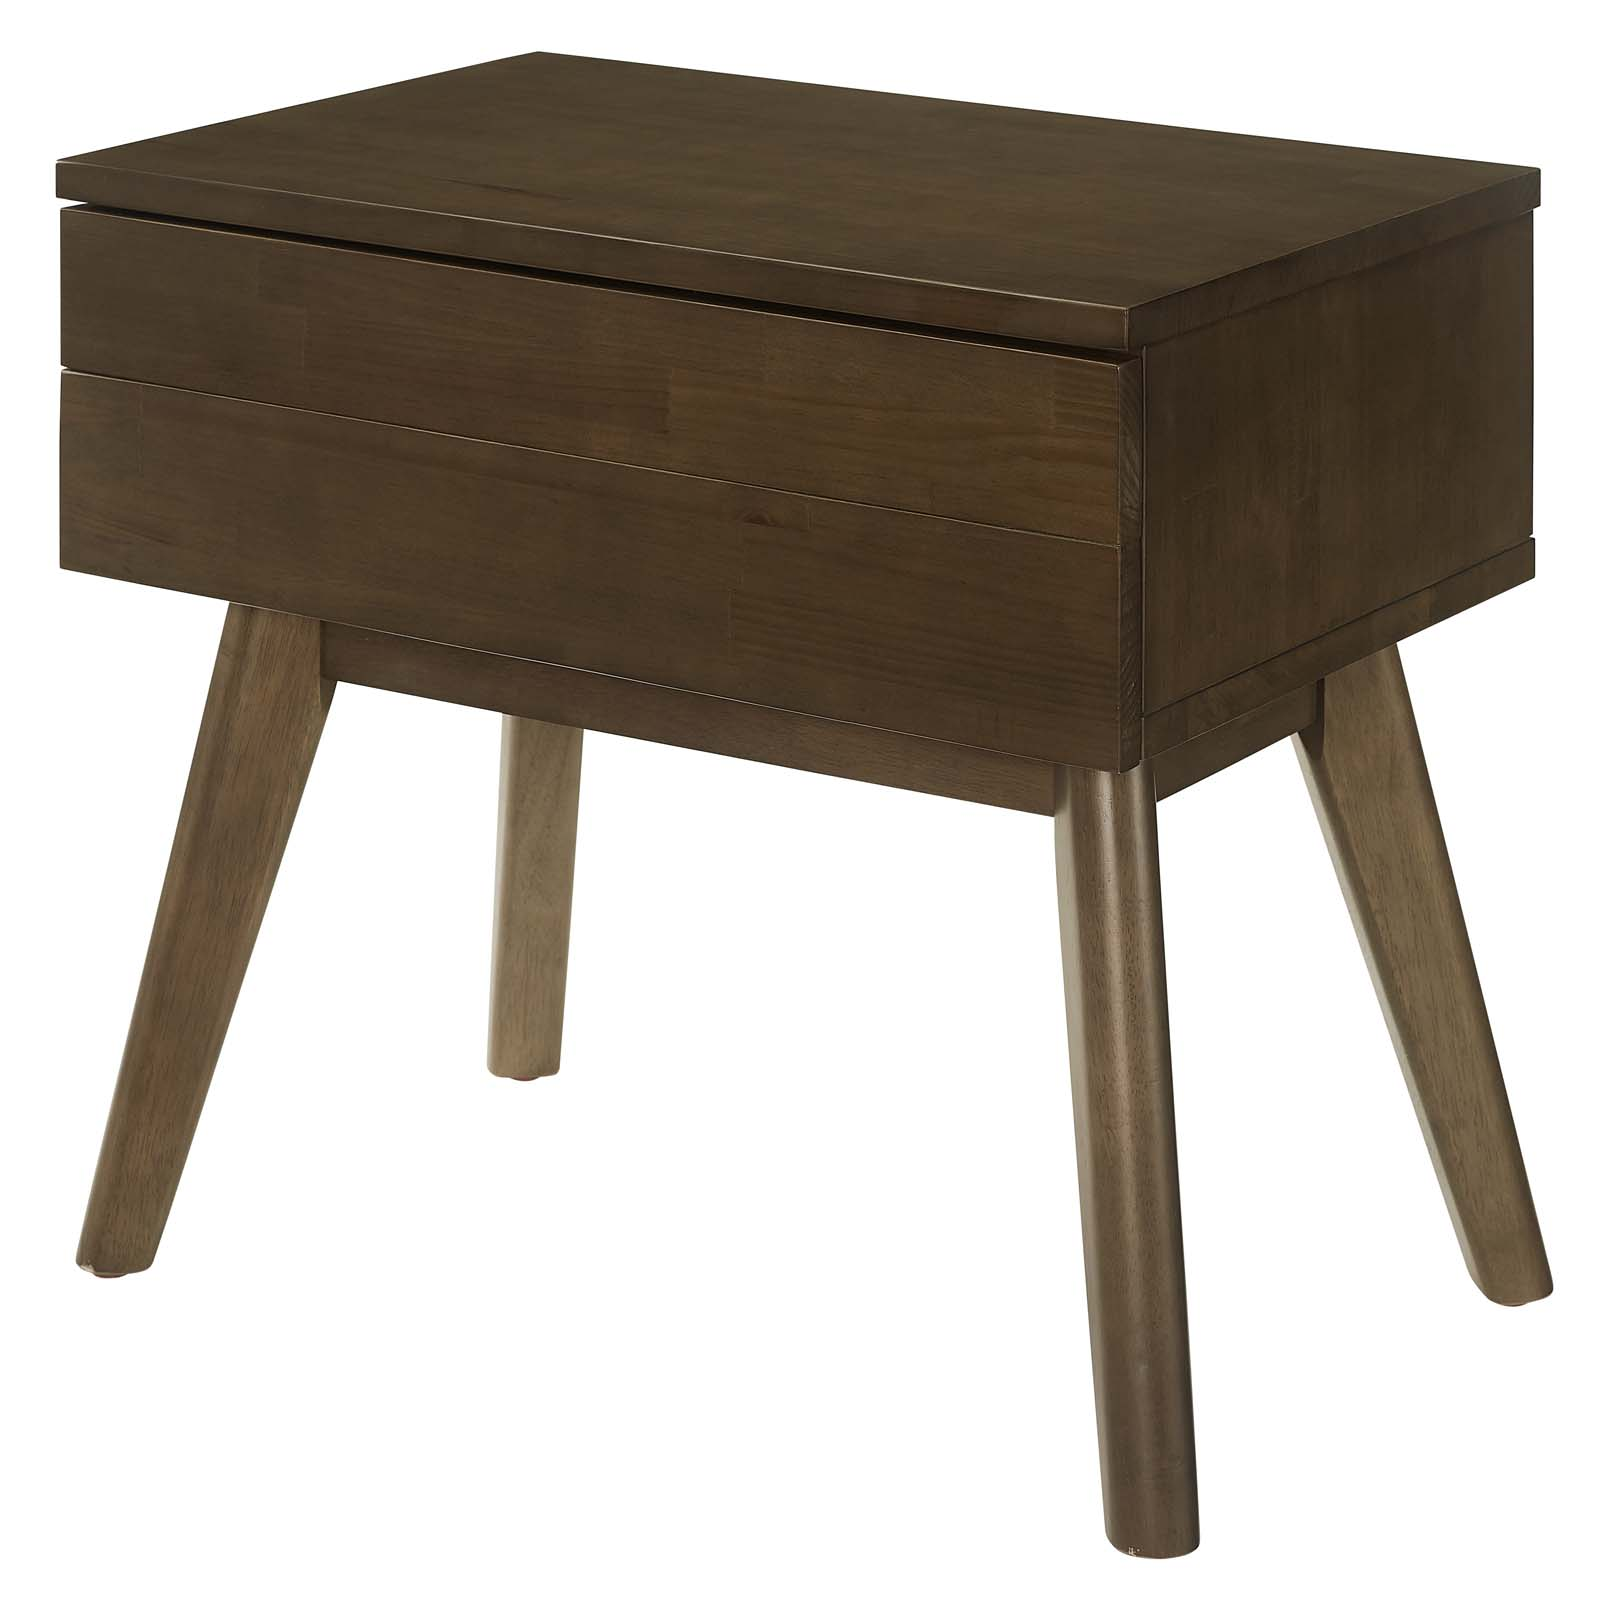 Details About Modern Contemporary Bedroom Room Nightstand End Table Natural Wood 15287